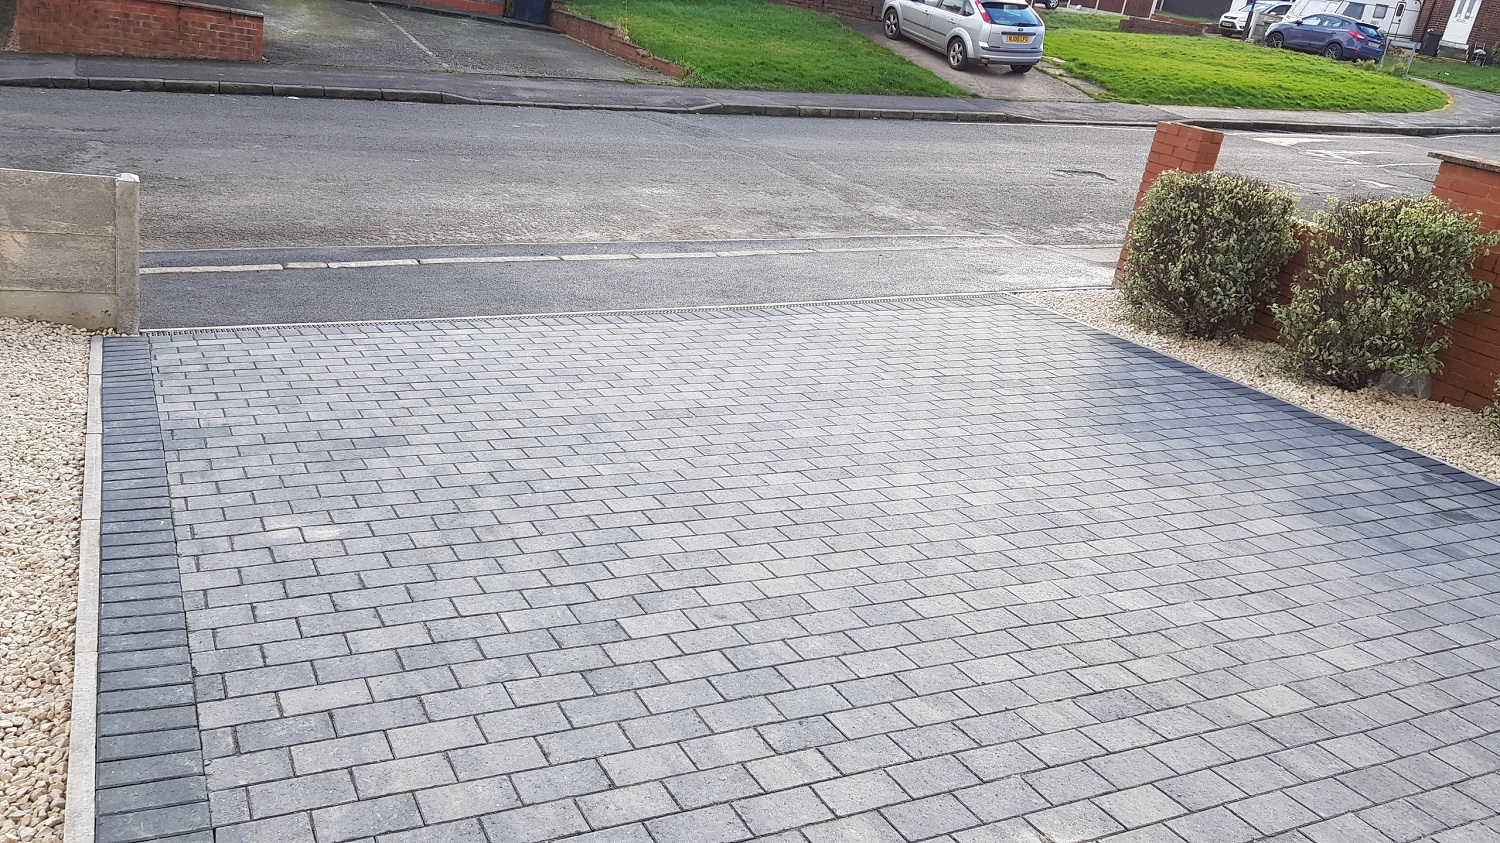 C39 Plaspave Premia Granite Stone Block Paving Driveway at Boythorpe in Chesterfield